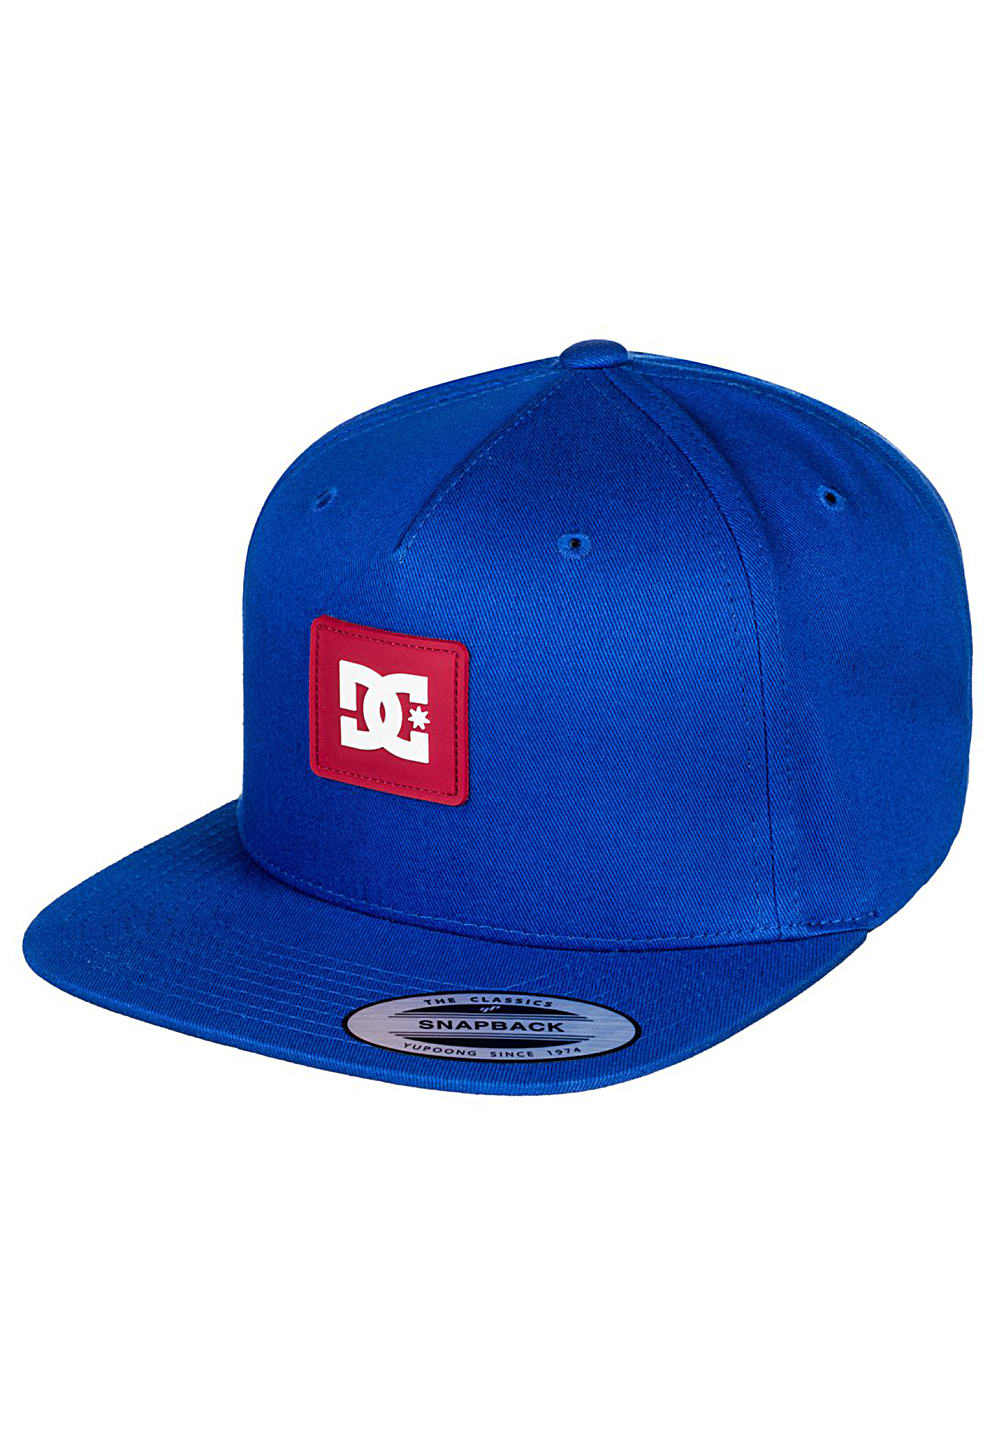 DC. DC Snapdoodle Snapback Cap ... 6ae5c44f16